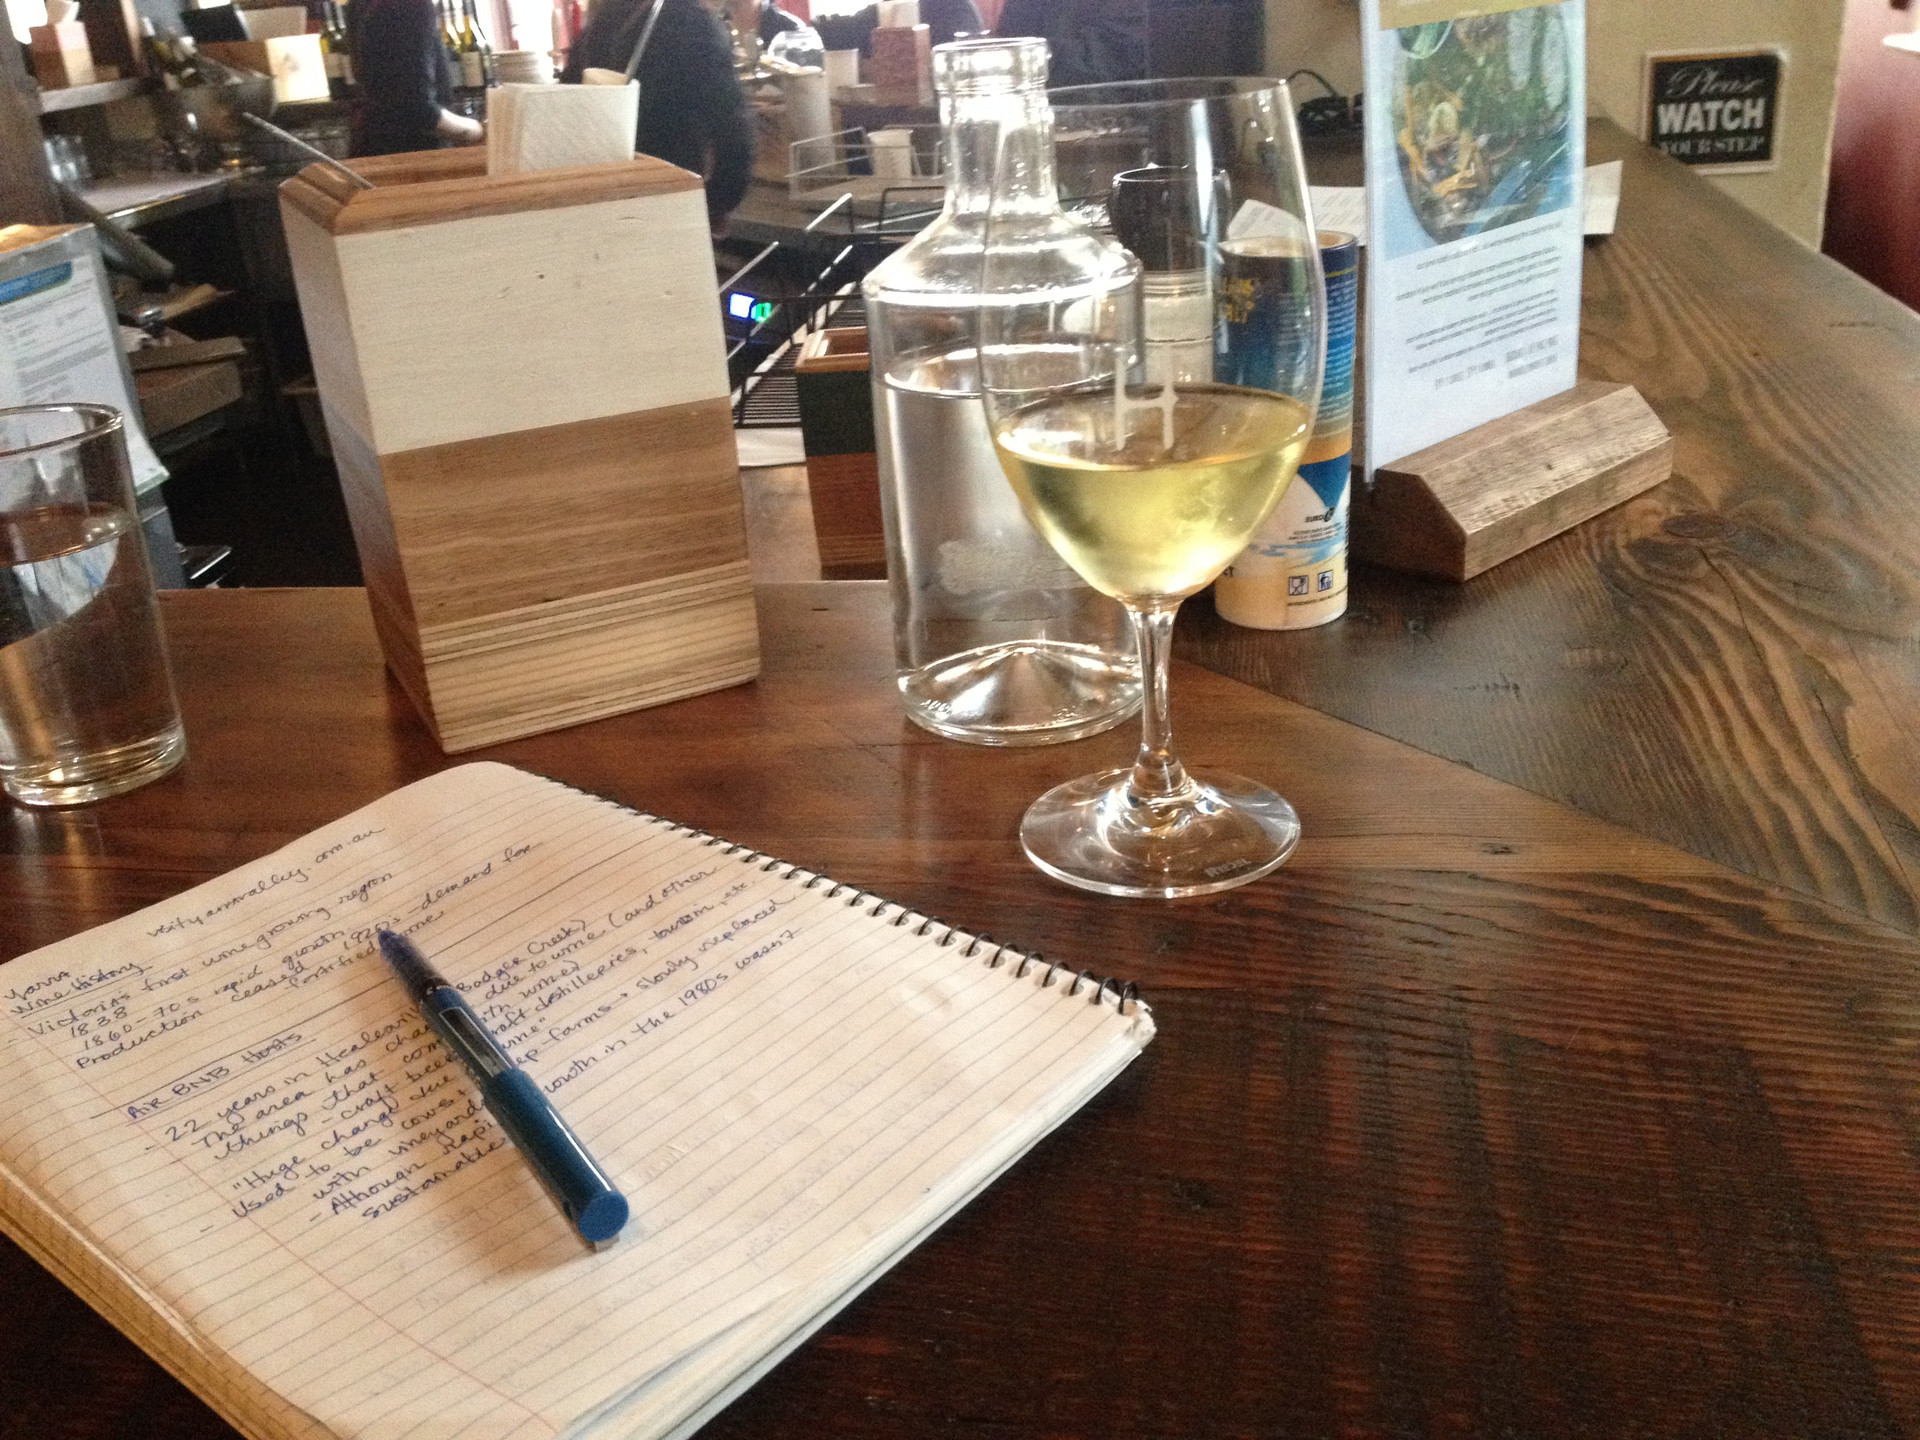 Research notes and a glass of local white in the Yarra Valley